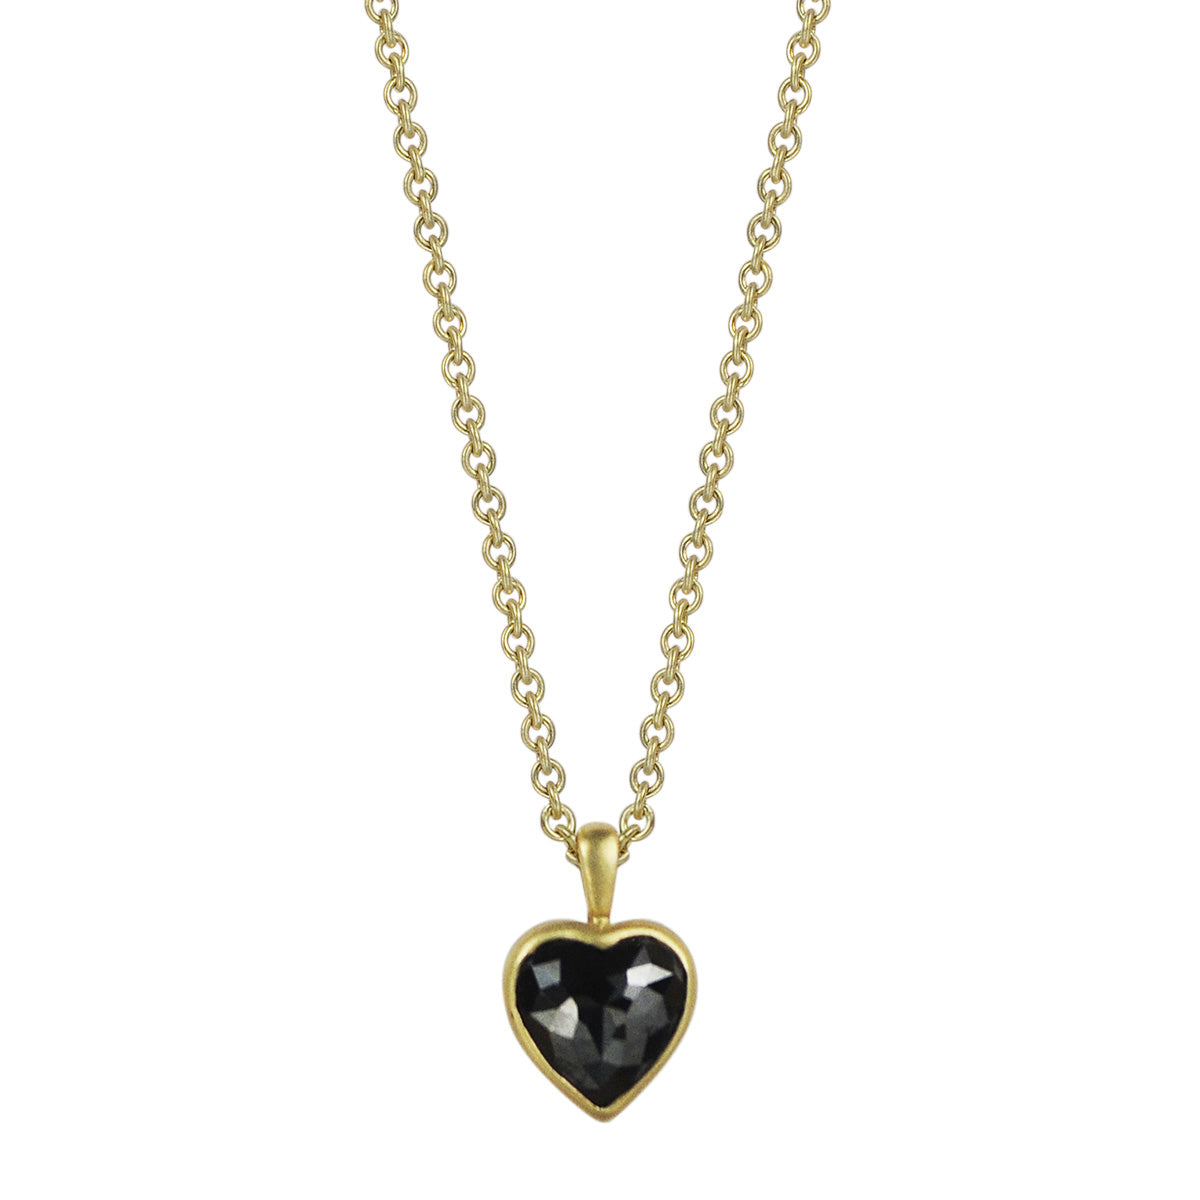 18K Gold Black Diamond Heart Pendant